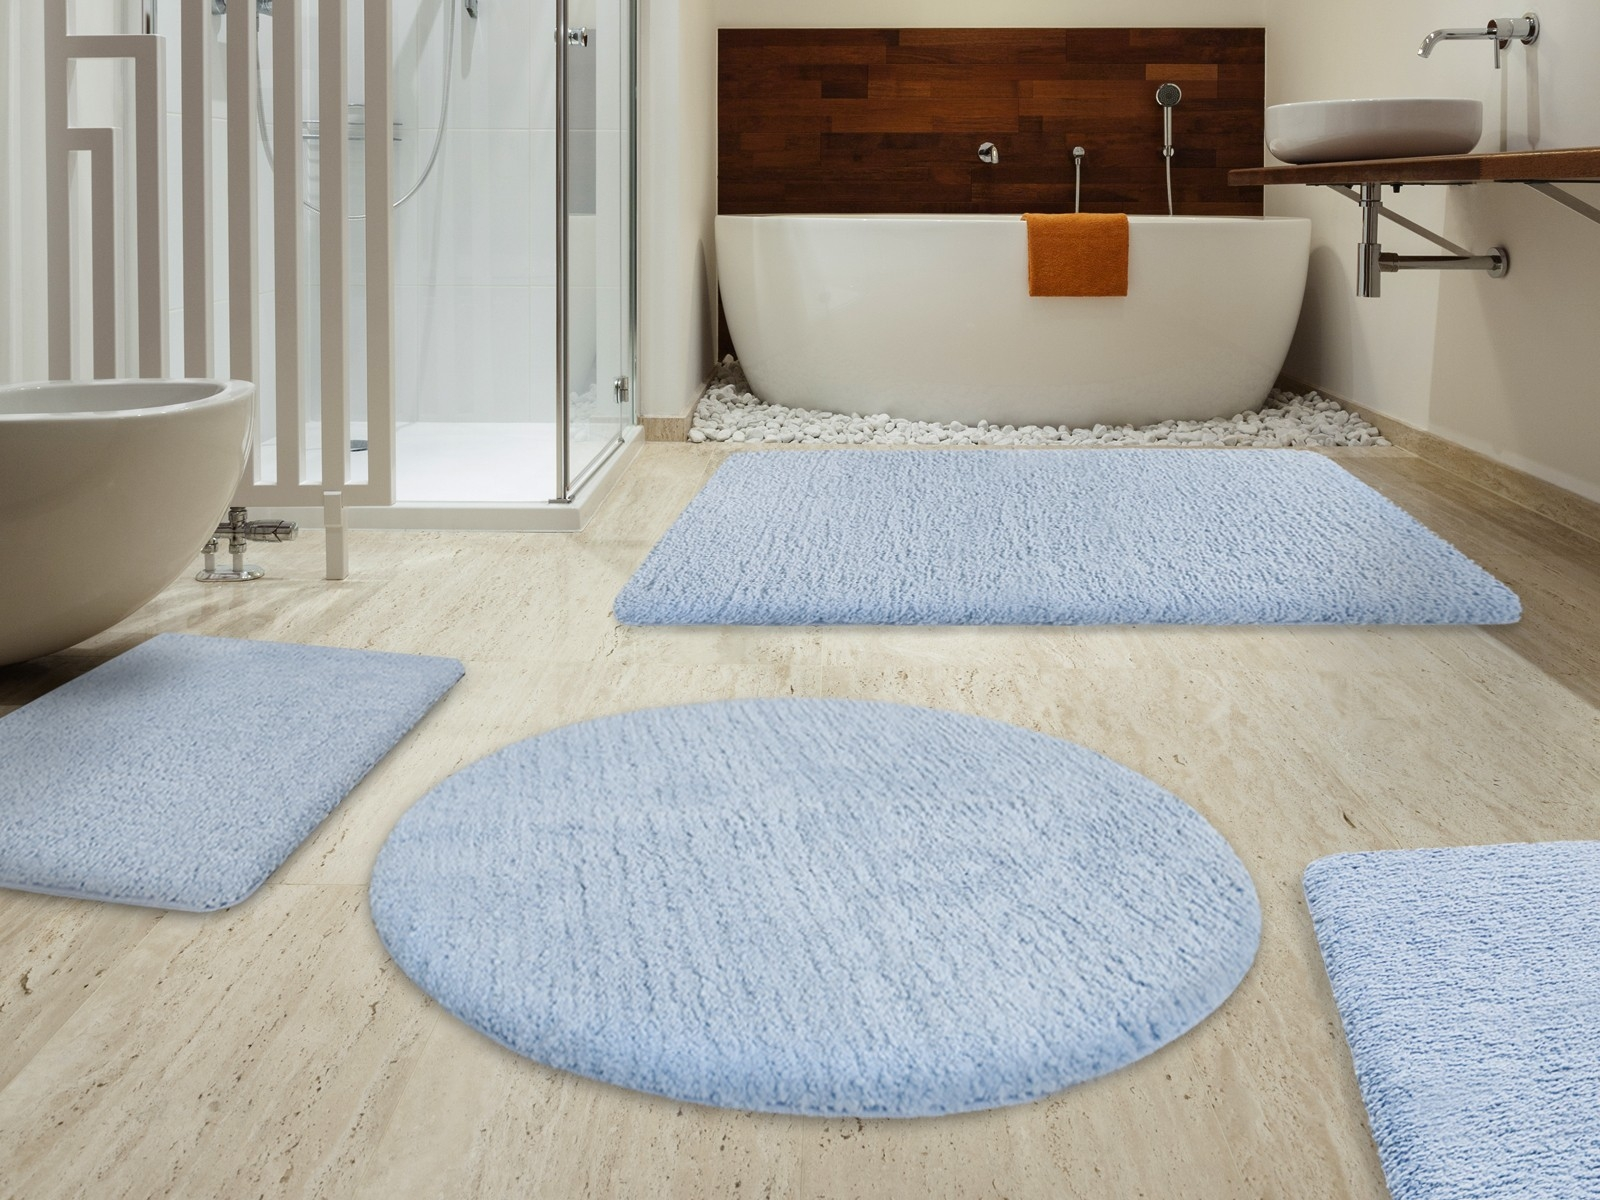 Permalink to Round Bathroom Rugs Large